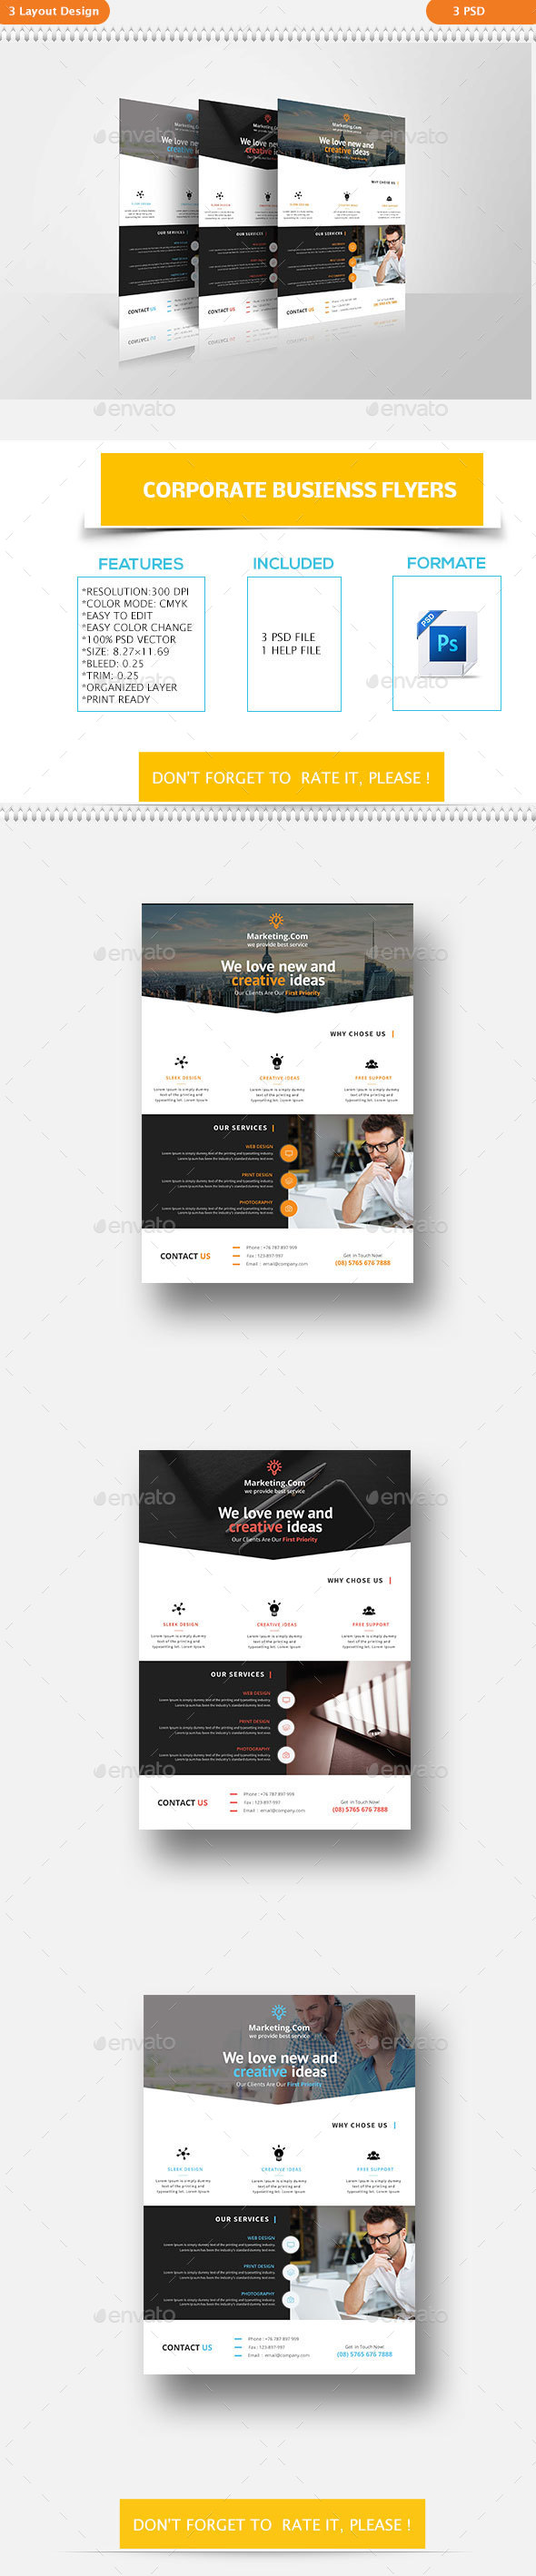 Corporate Business Flyers - Flyers Print Templates